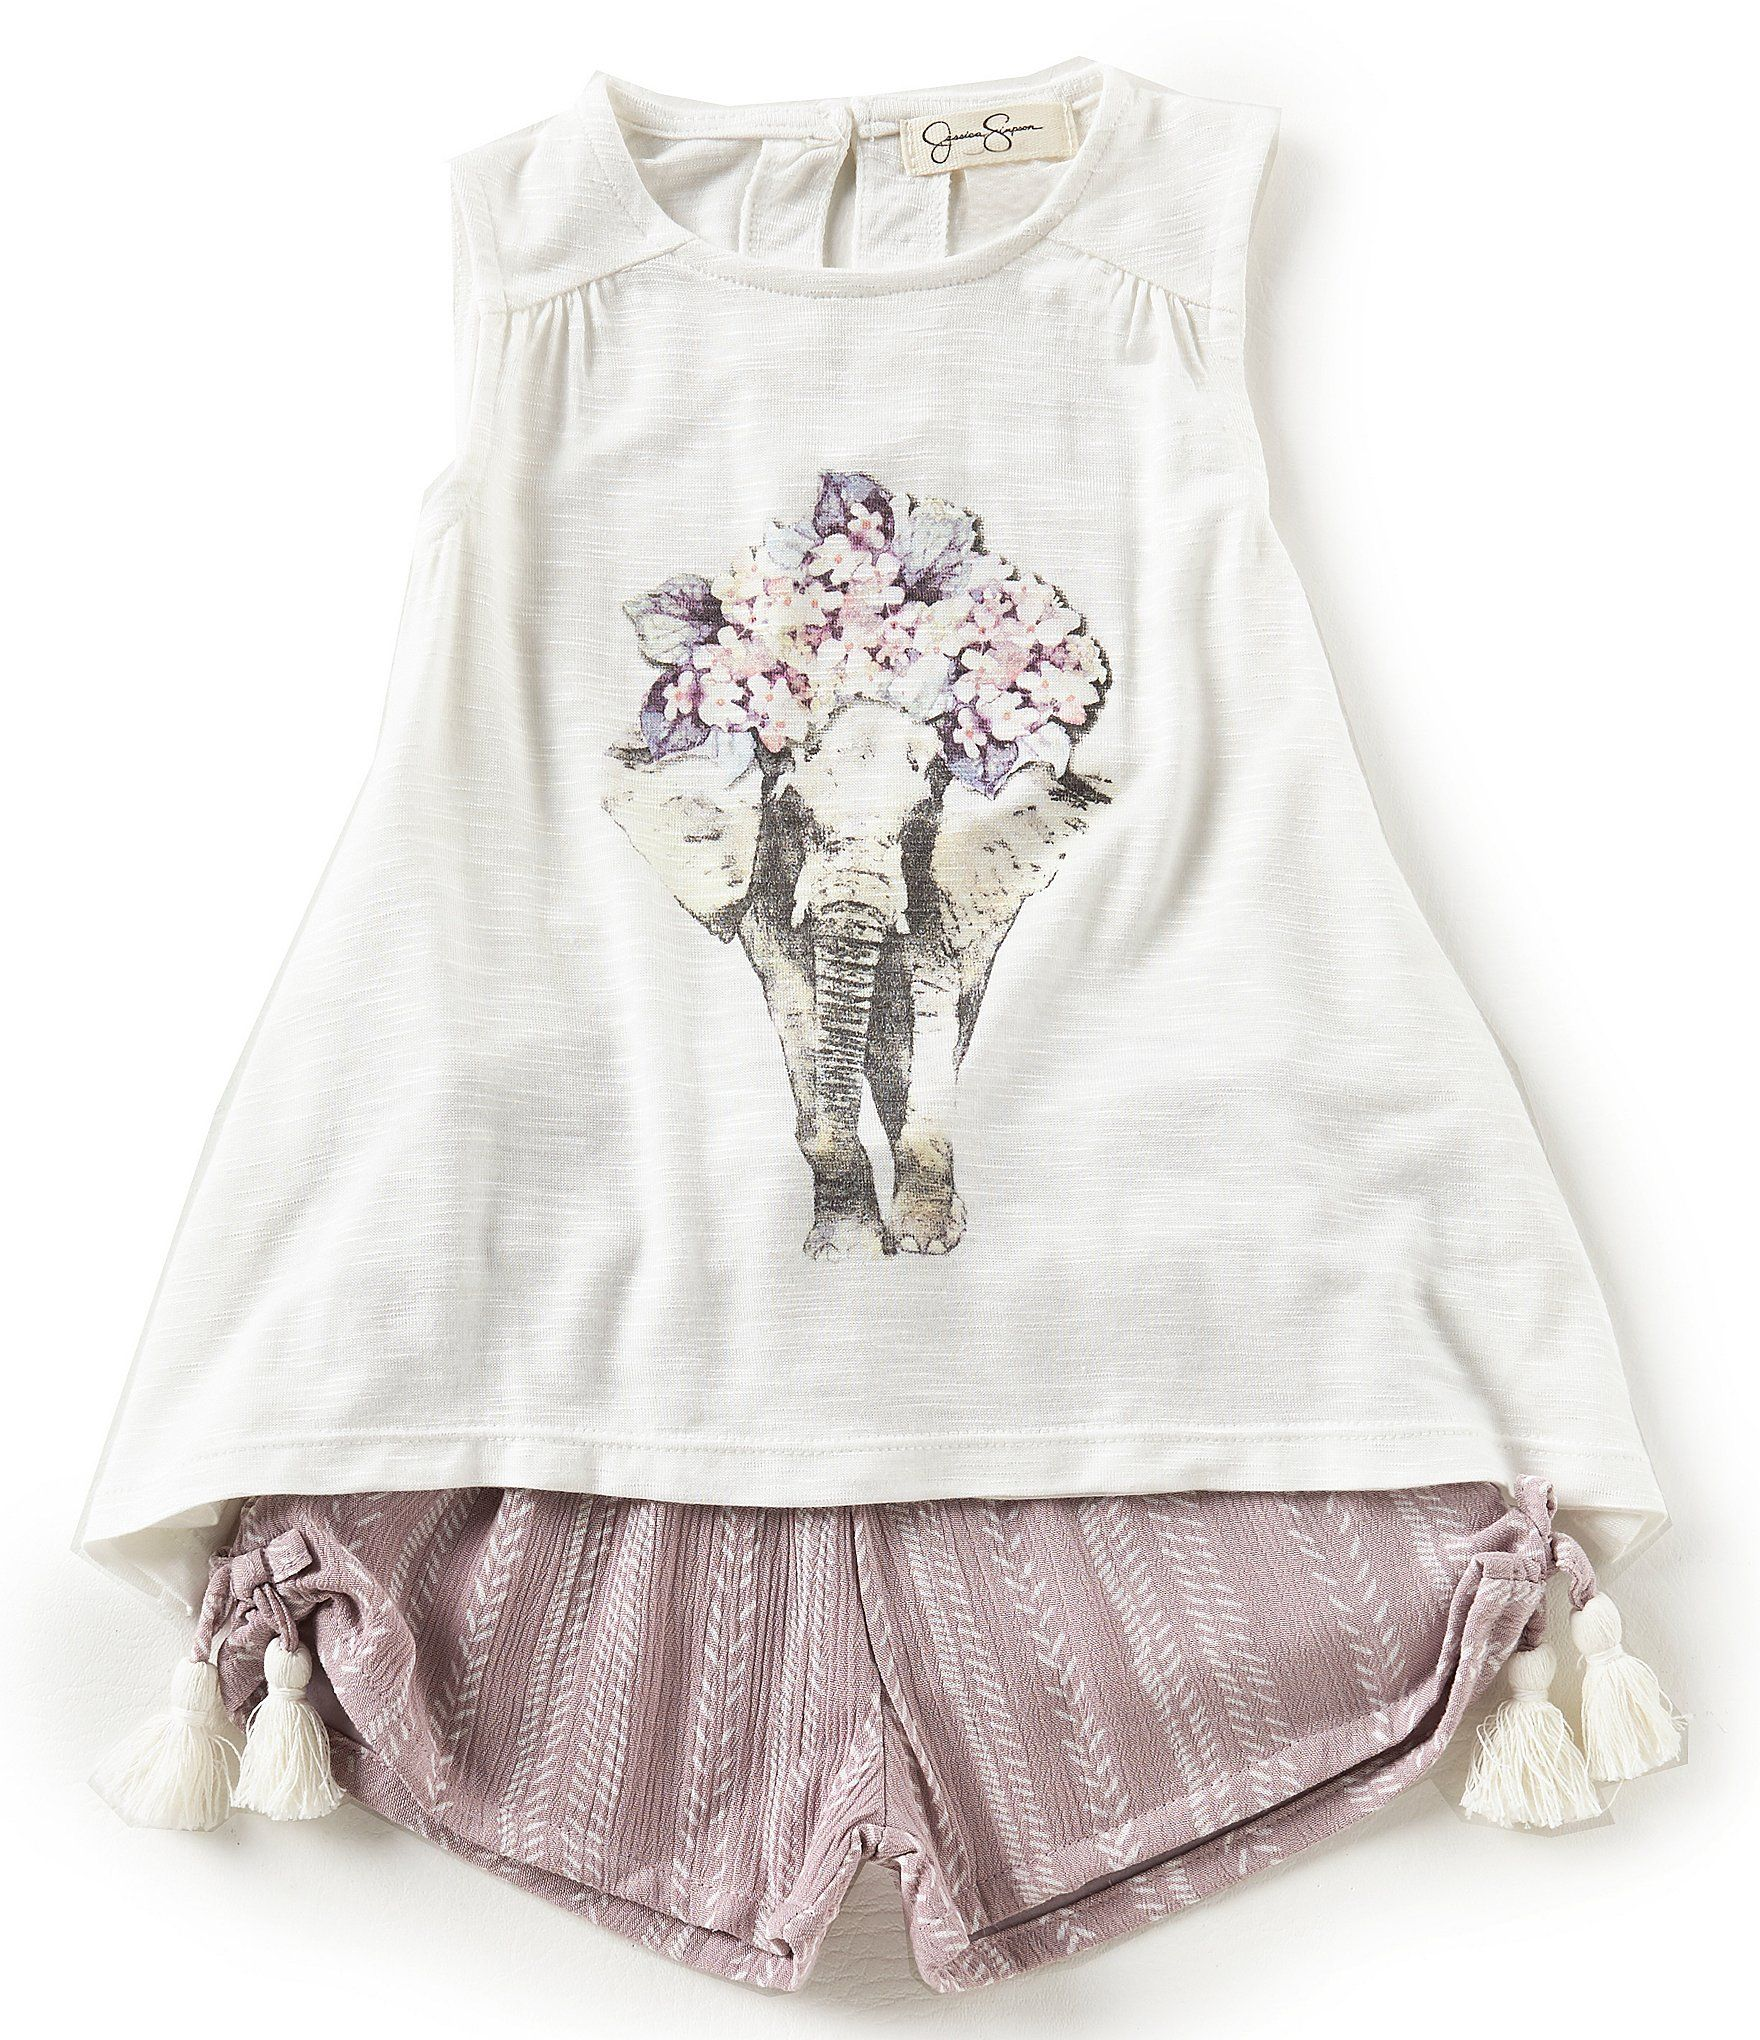 Jessica Simpson Baby Clothes Amazing Jessica Simpson Baby Girls 1224 Months Denim Tank Top & Tropical Design Decoration